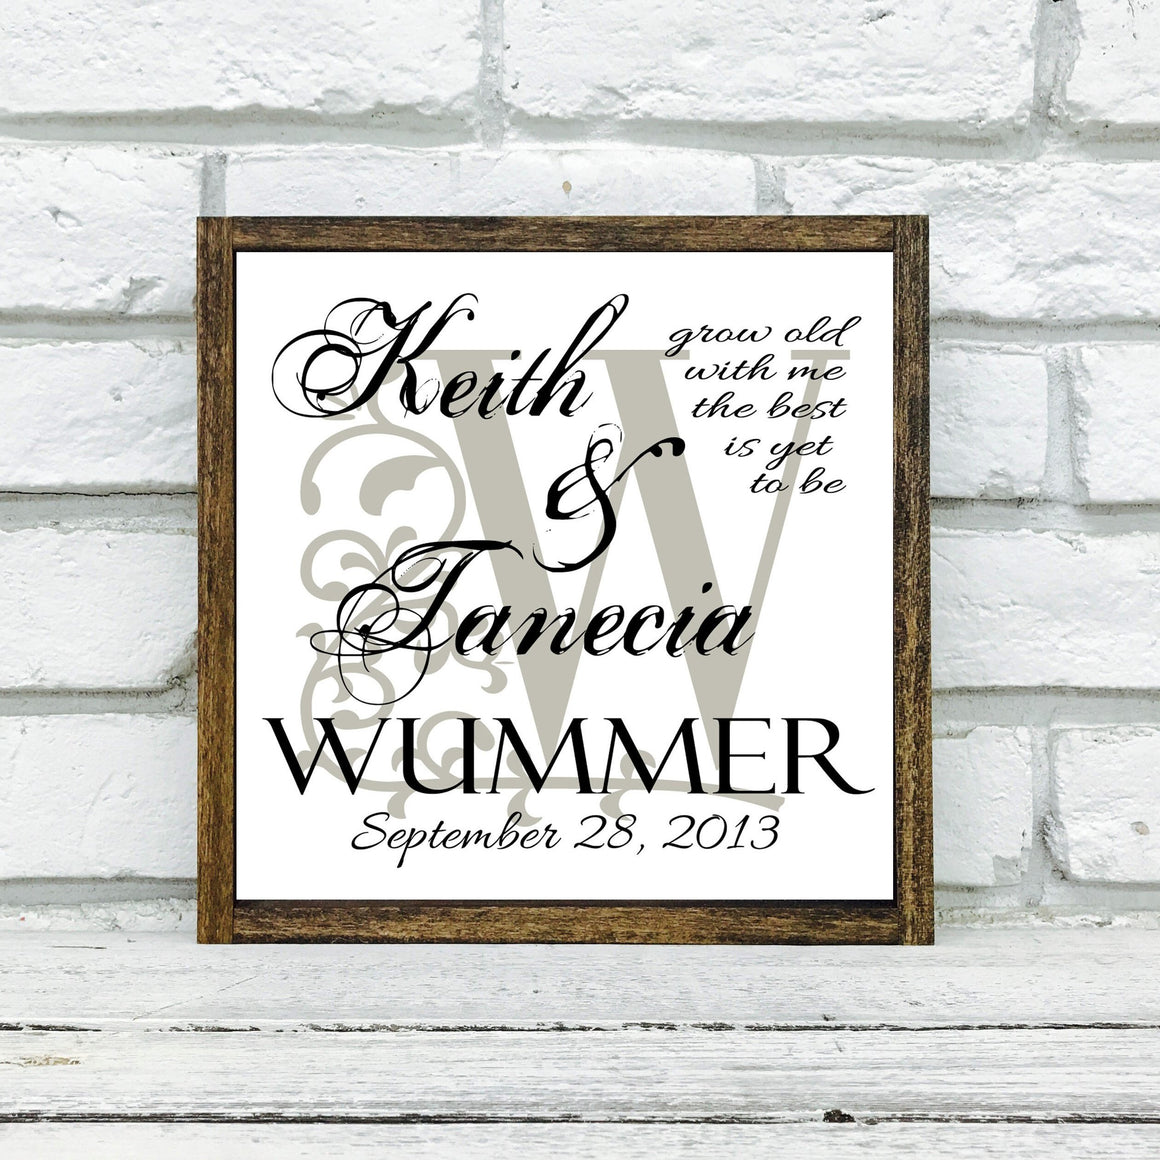 Personalized Wedding Last Name Sign gift for the couple